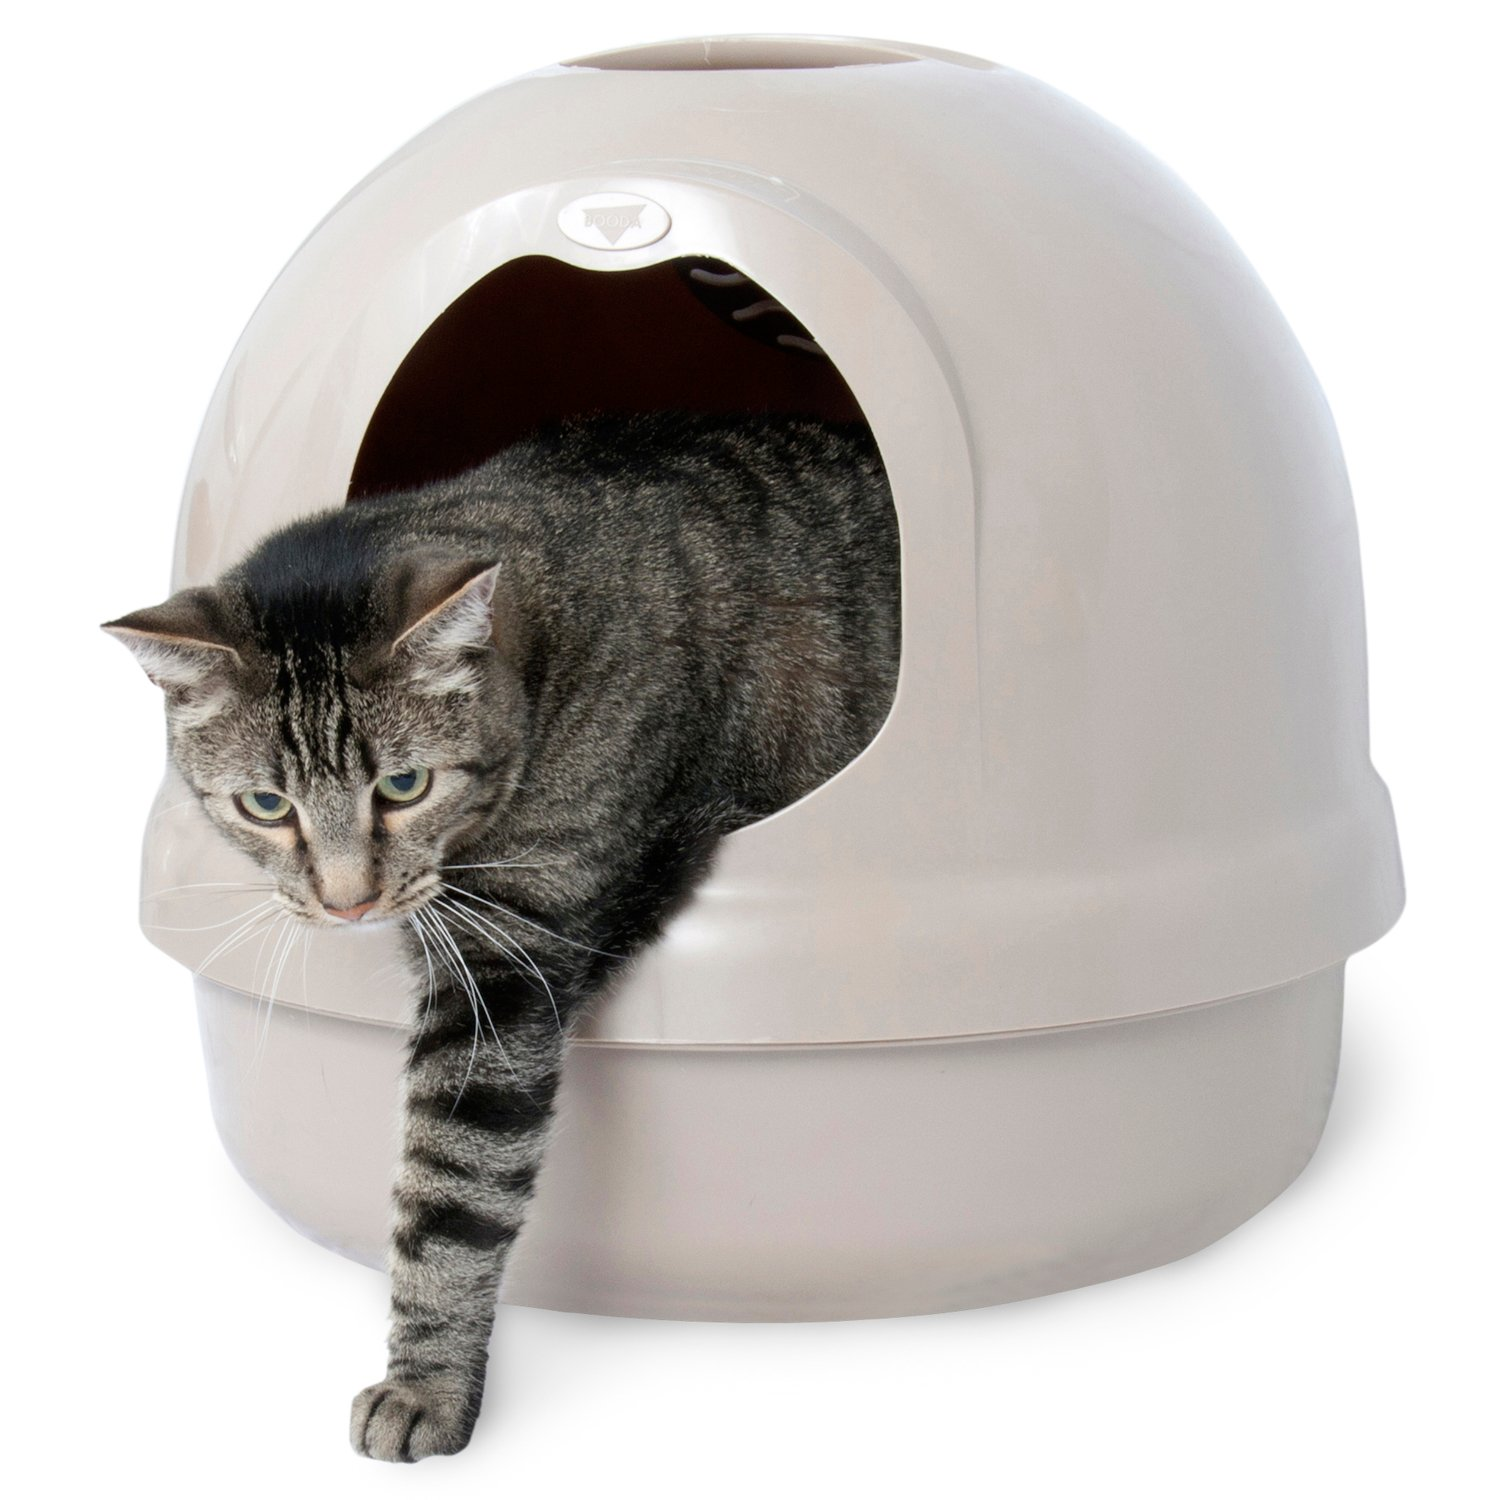 Booda Dome Cleanstep Cat Litter Box